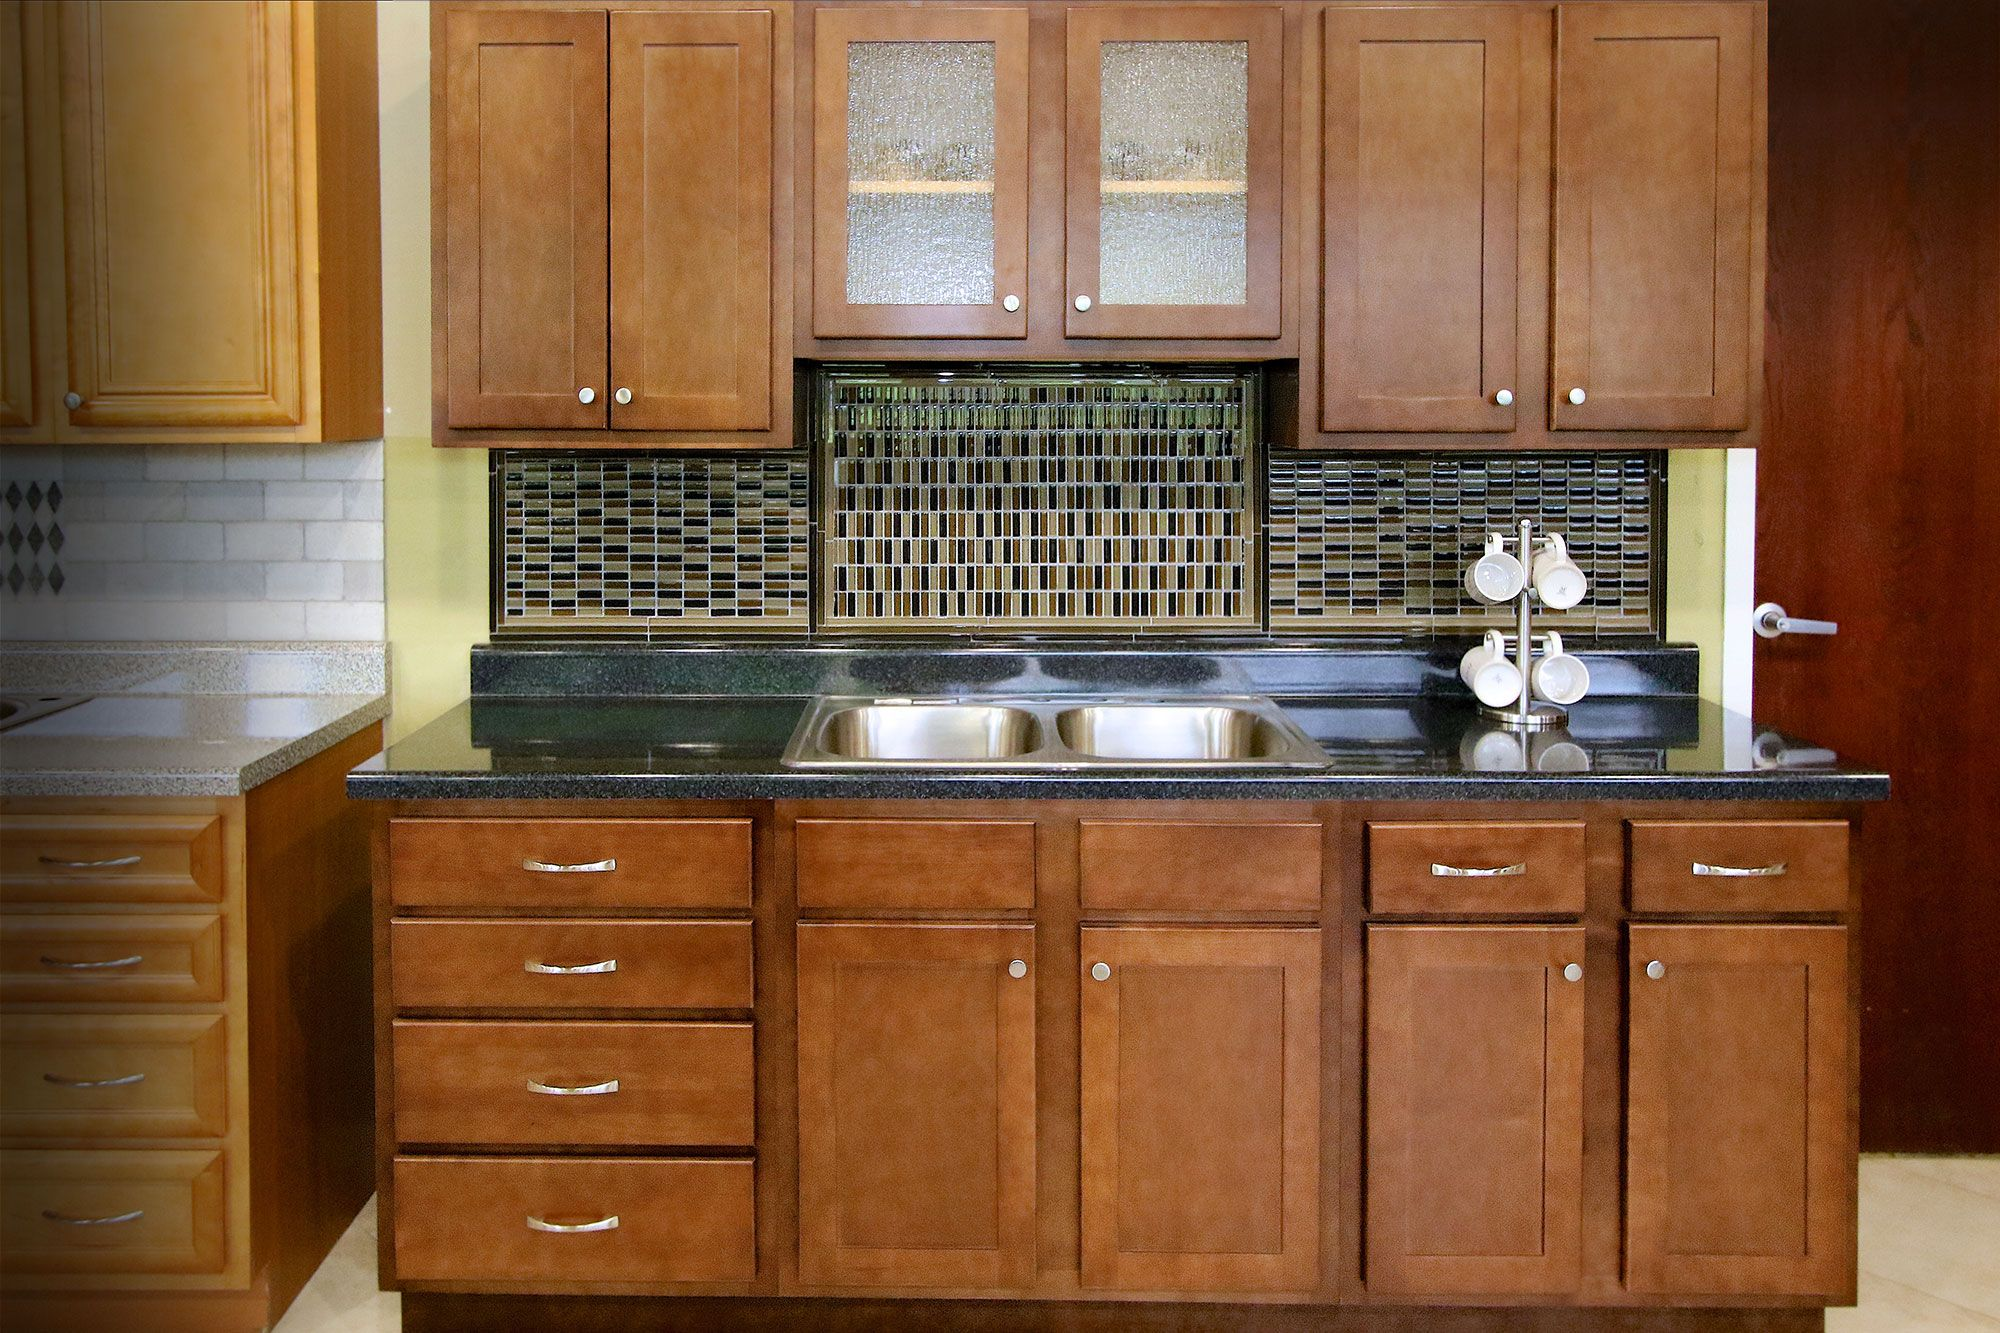 Quincy Cabinets – Kitchen & Bath Wood Cabinets in Stock